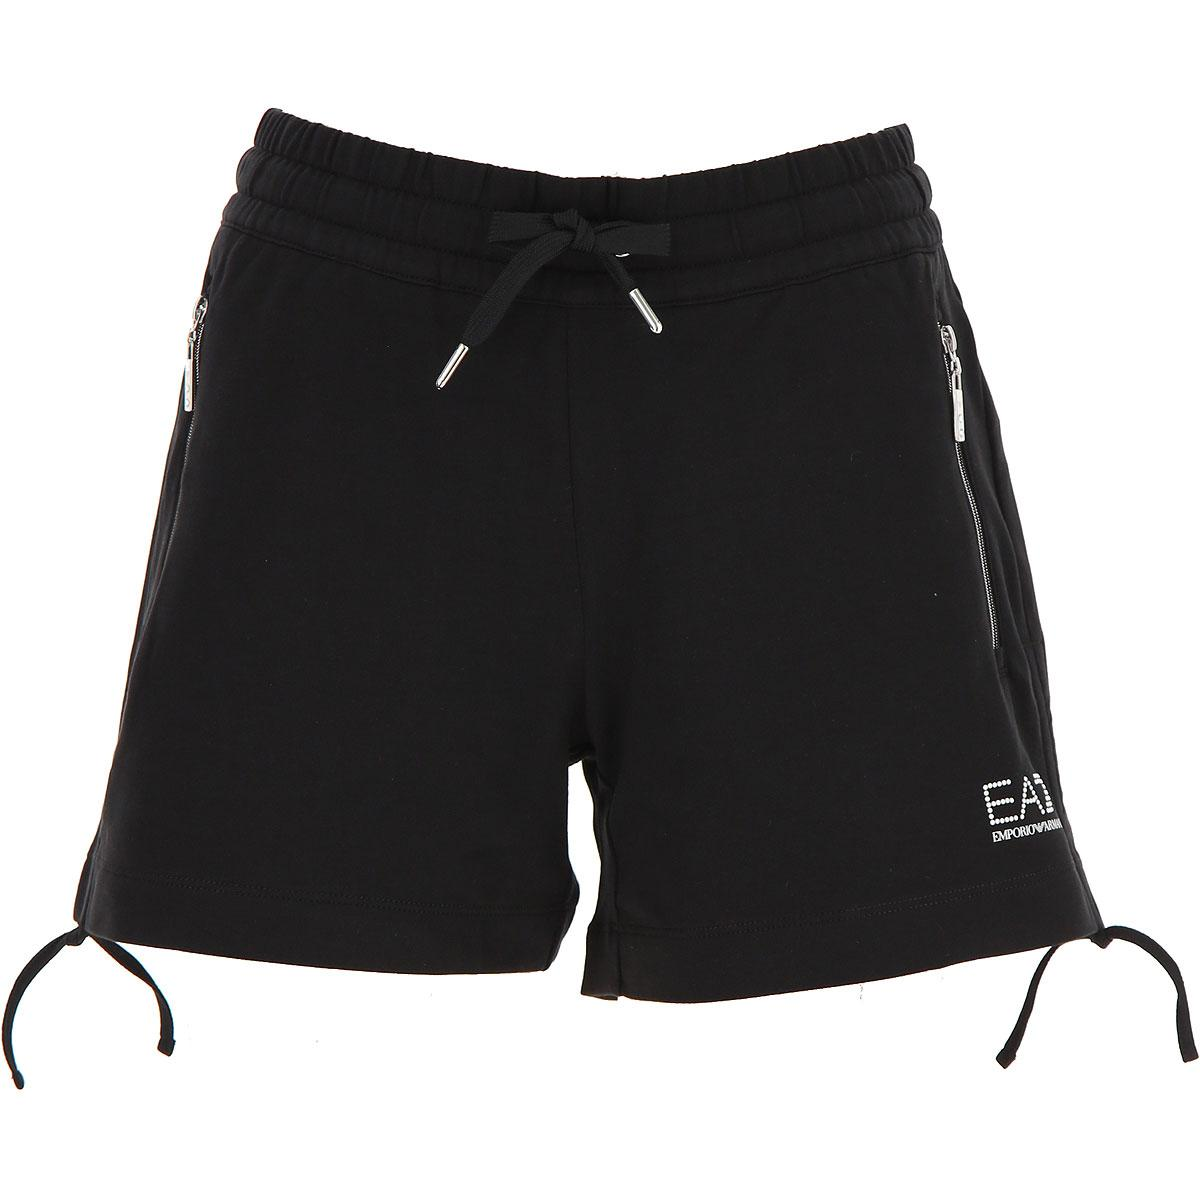 cef87e8440 Emporio Armani Shorts For Women in Black - Lyst